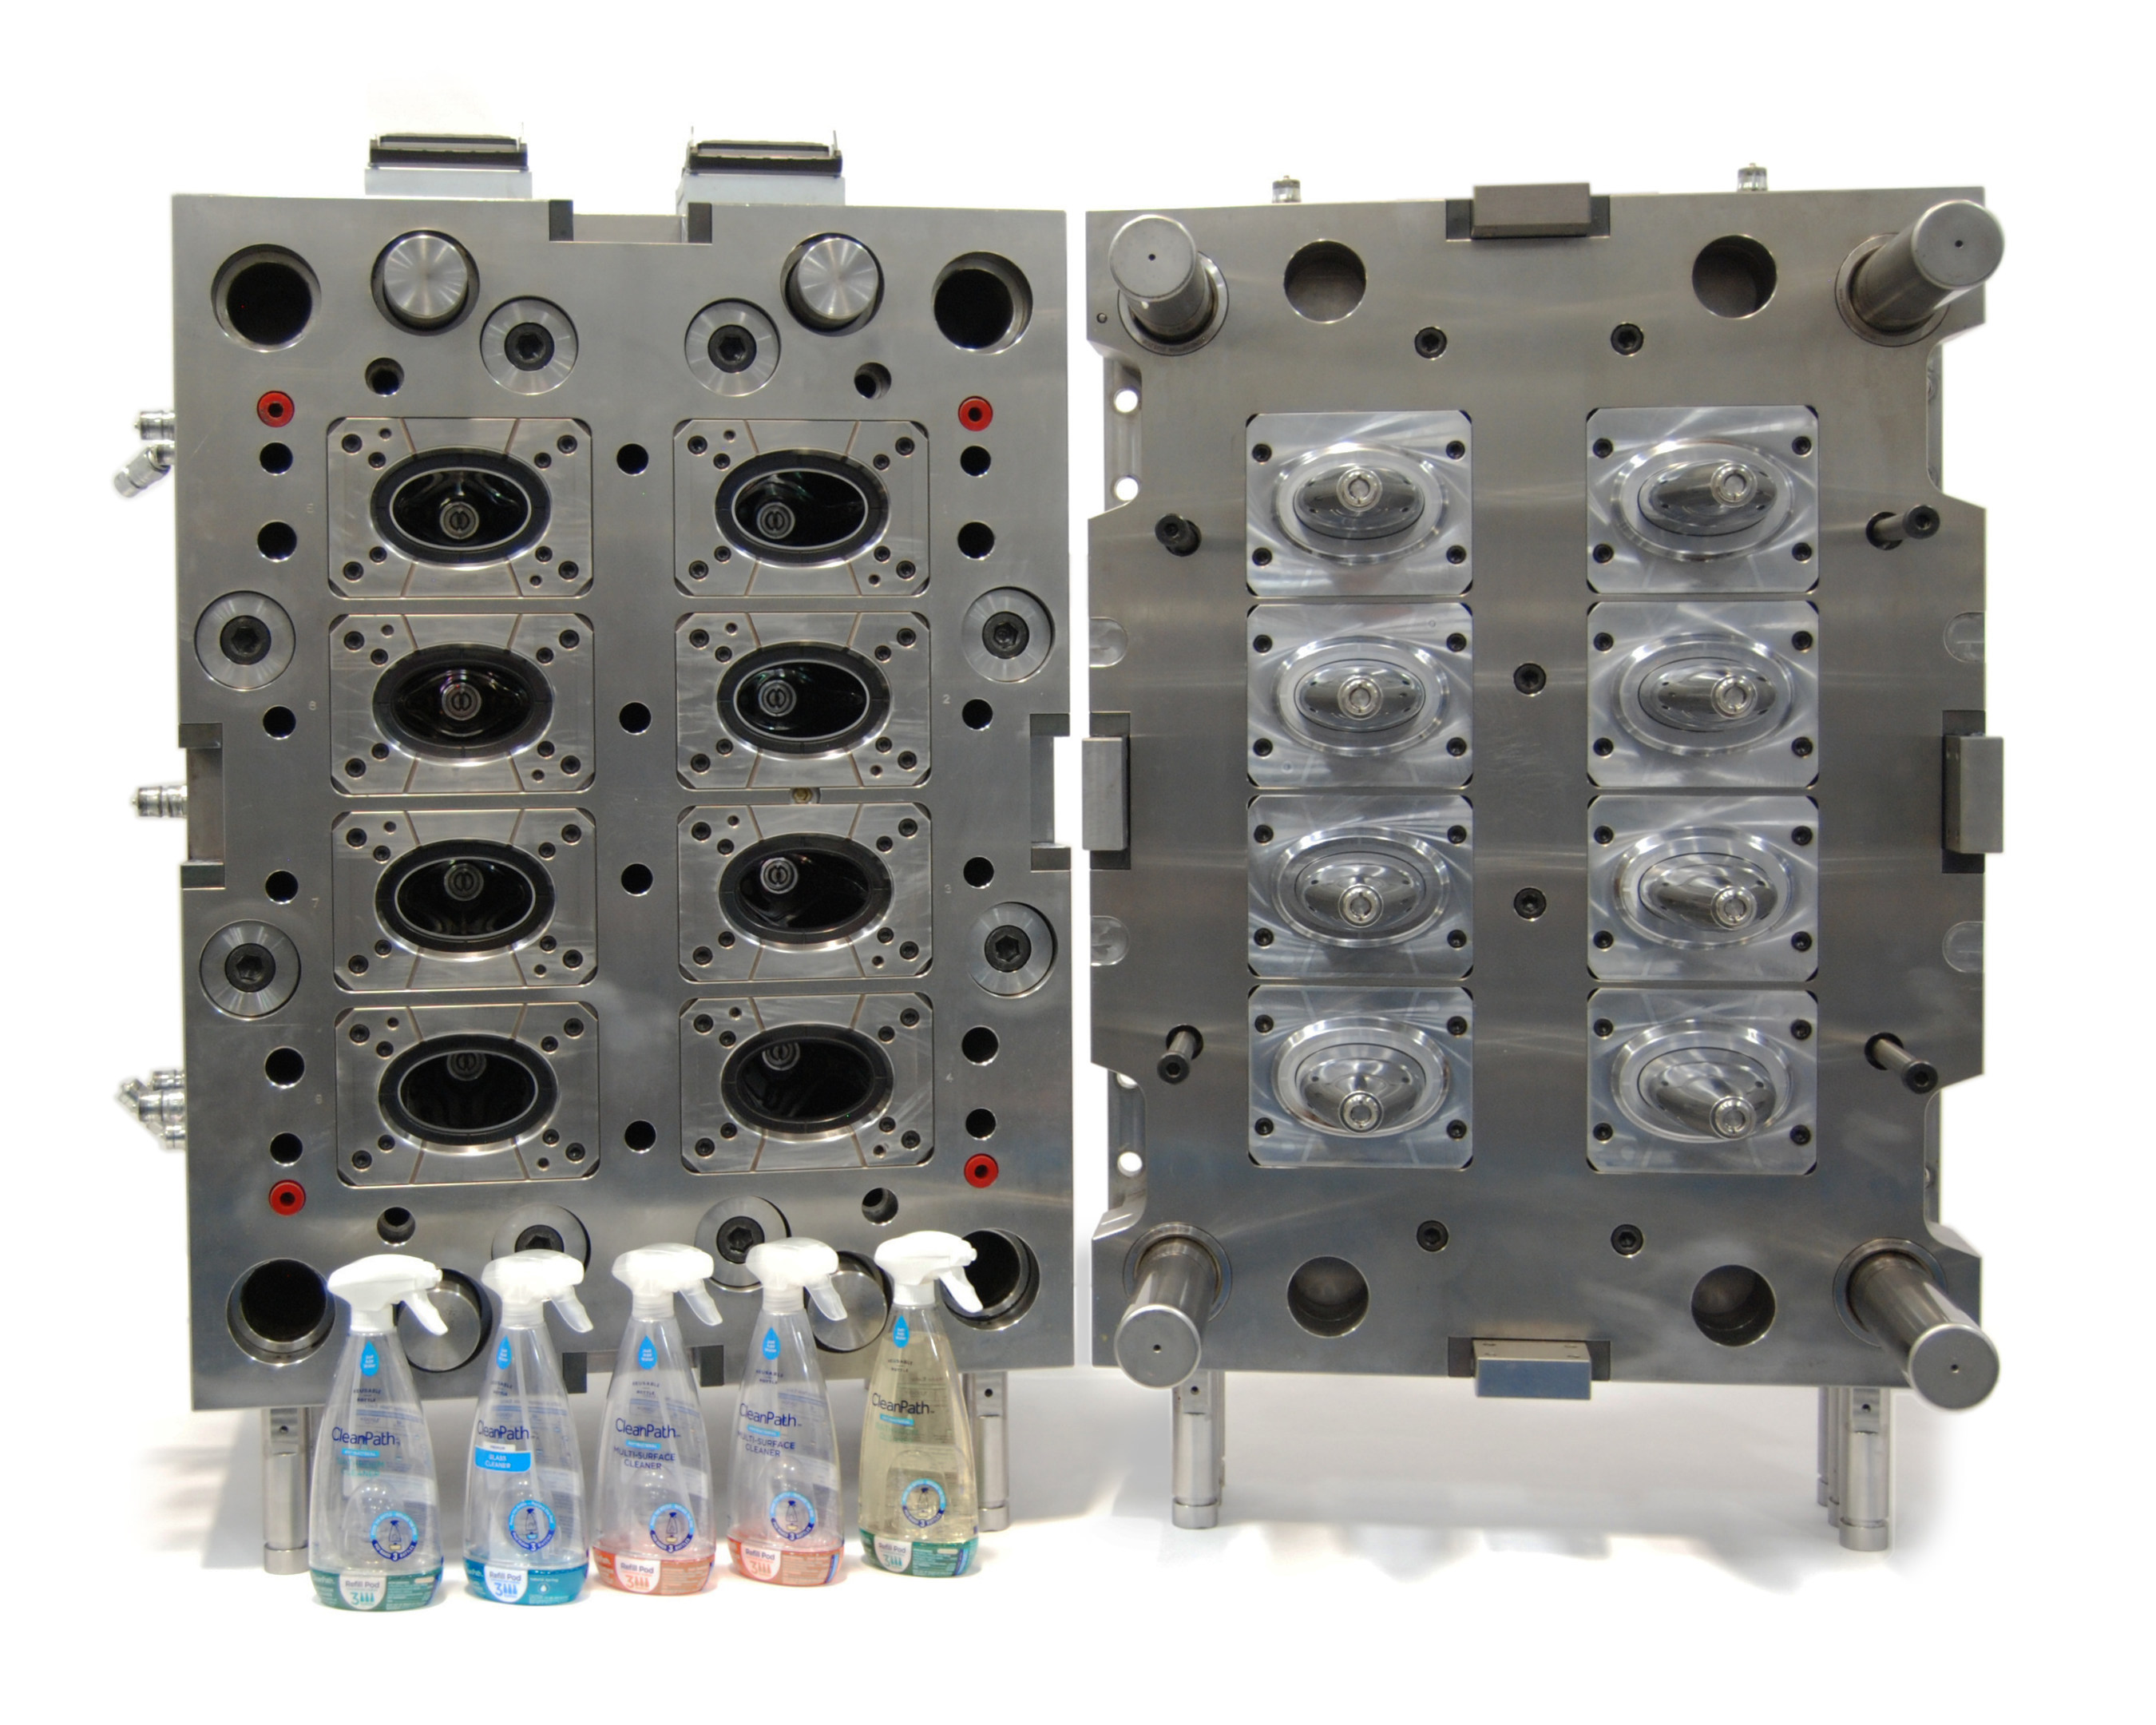 R&D/Leverage® Injection Mold Making Services Selected by the